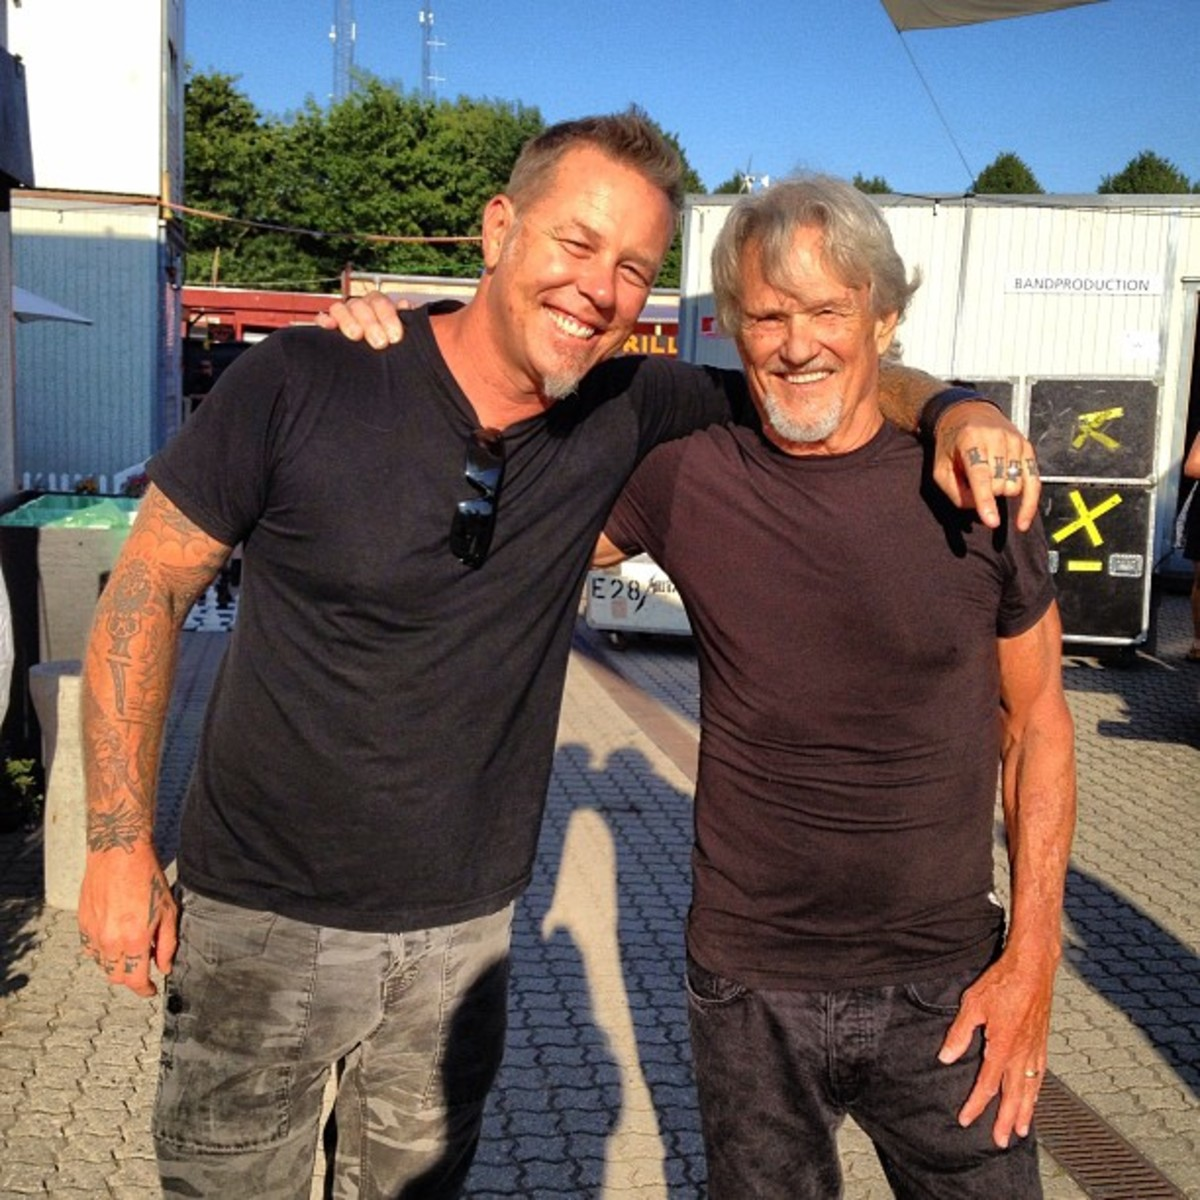 Two legends James Hetfield and Kris Kristofferson